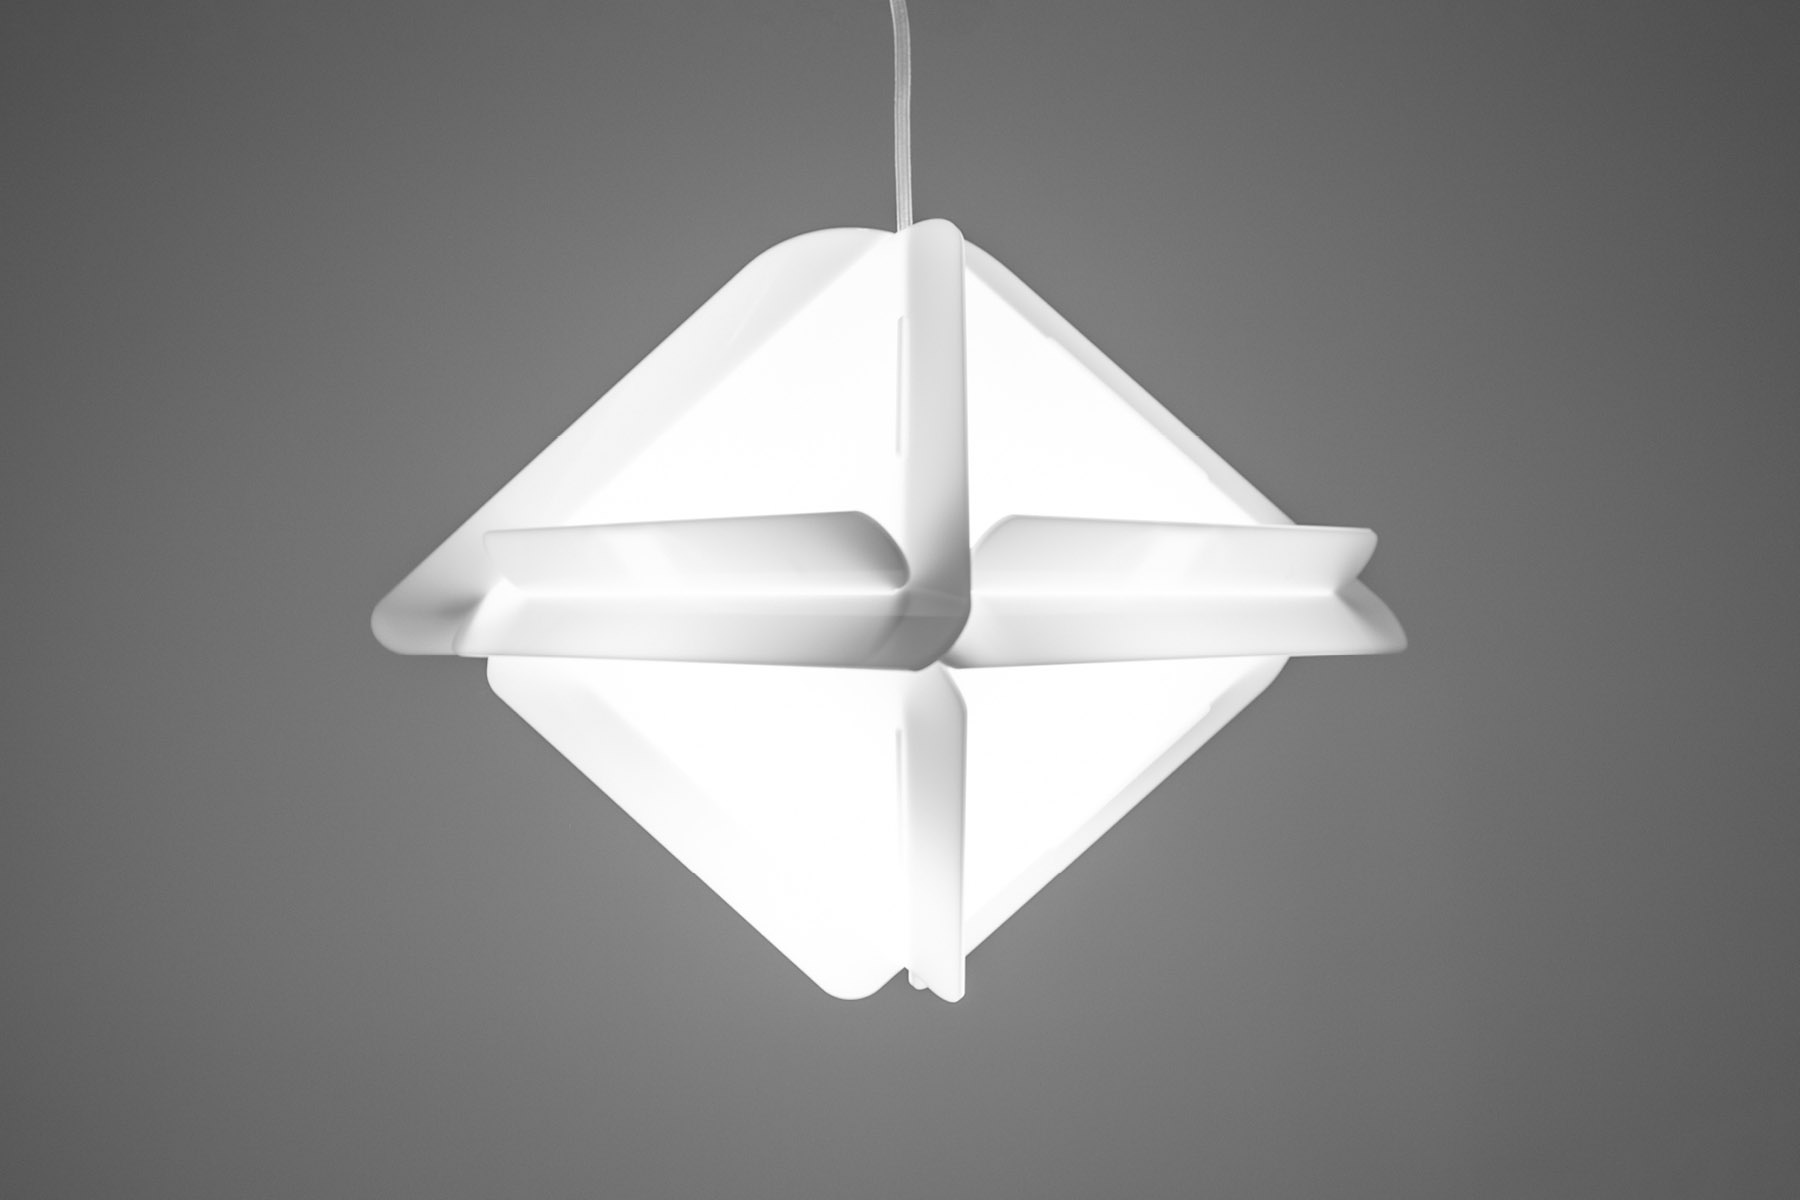 Triangular lamp suspended